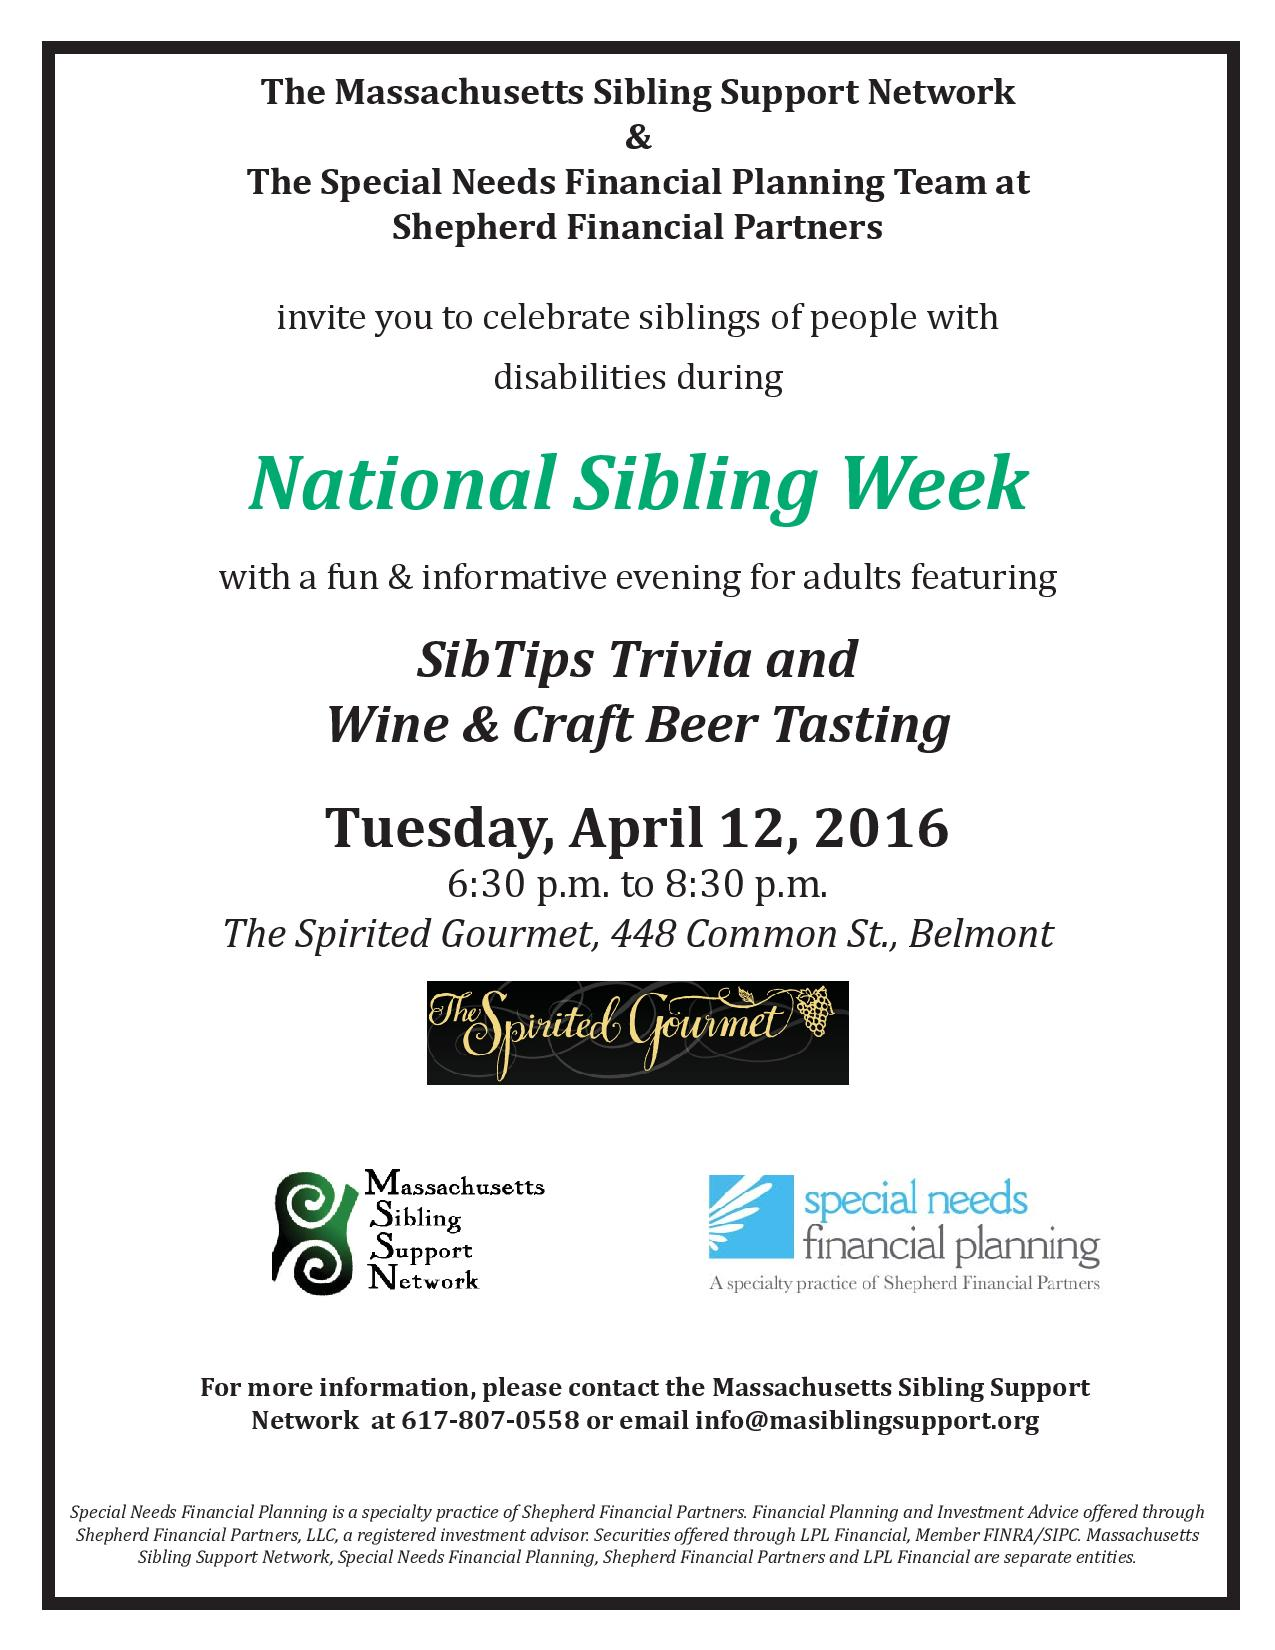 Sibling_Event_Flyer_Finalv2-page-001.jpg